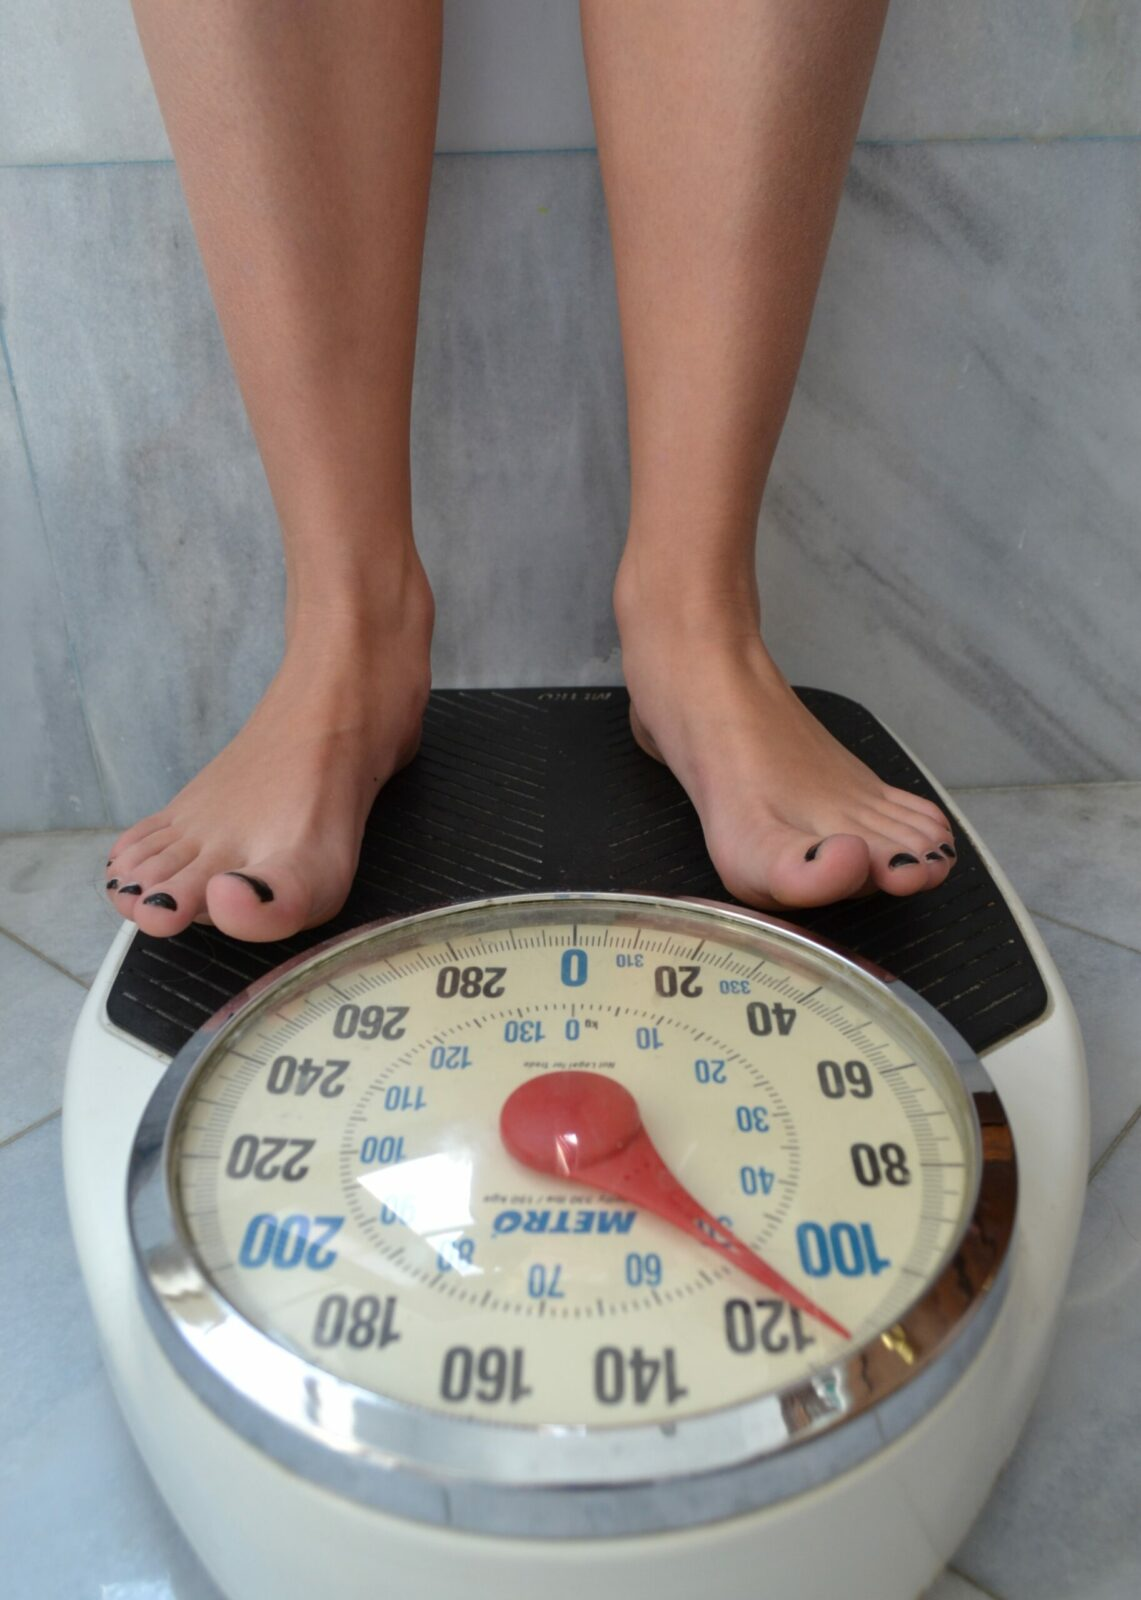 How To Lose 30 Pounds In A Month: Rapid Results